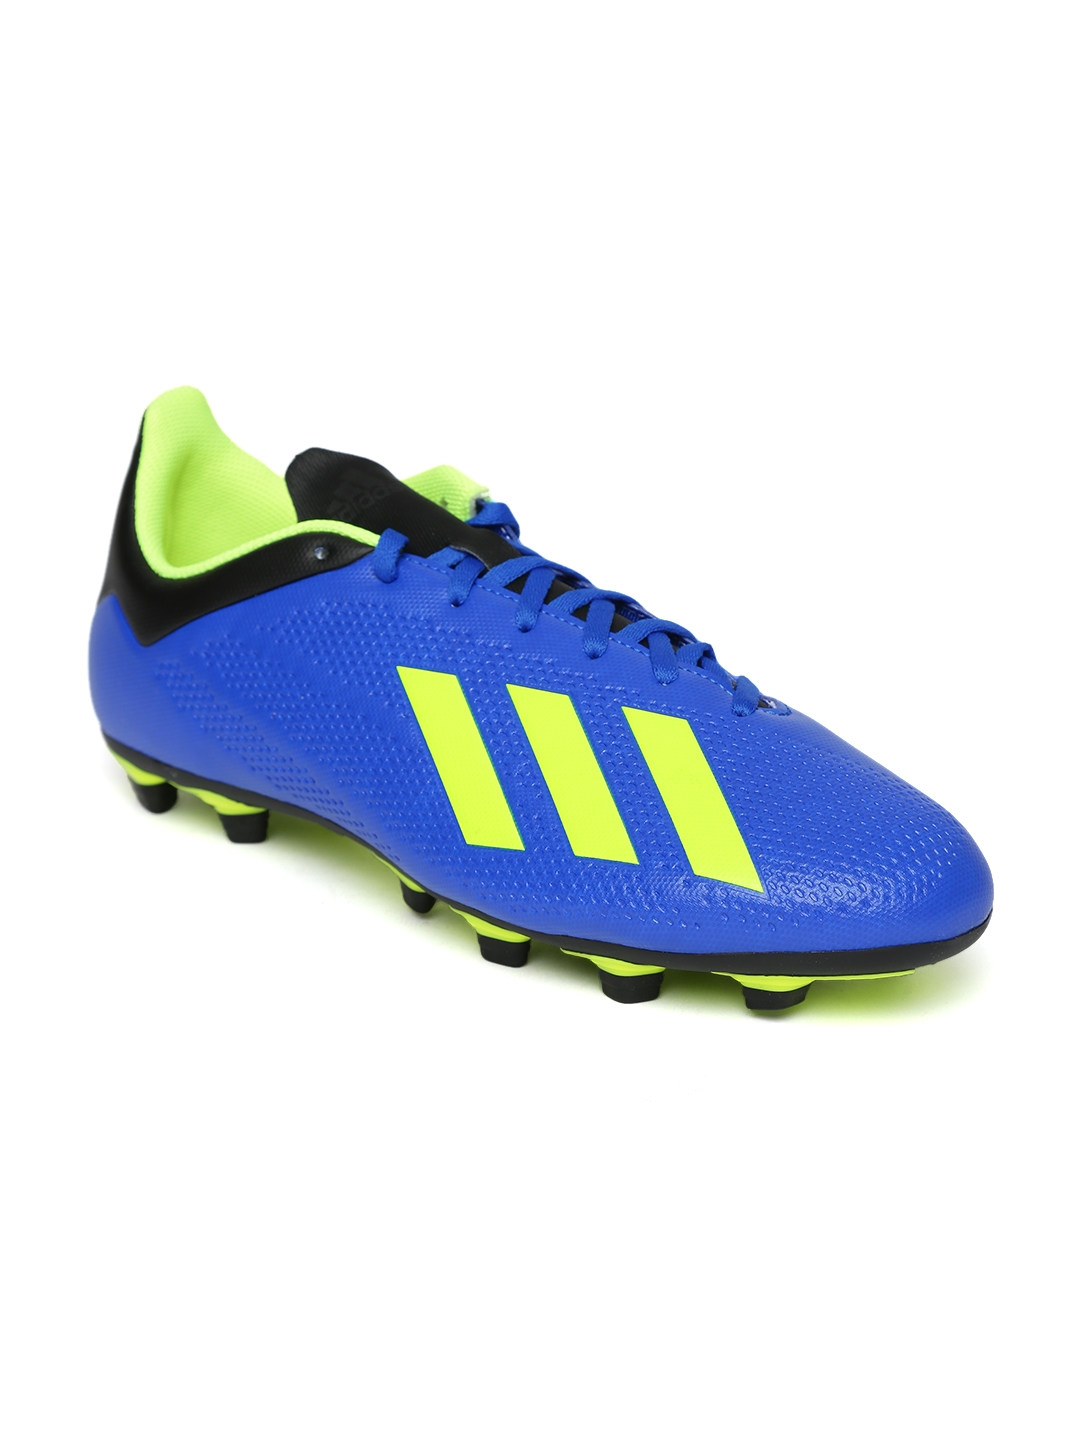 Escandaloso Izar Absoluto  Buy ADIDAS Men Blue X 18.4 FG Football Shoes - Sports Shoes for Men 6382932  | Myntra